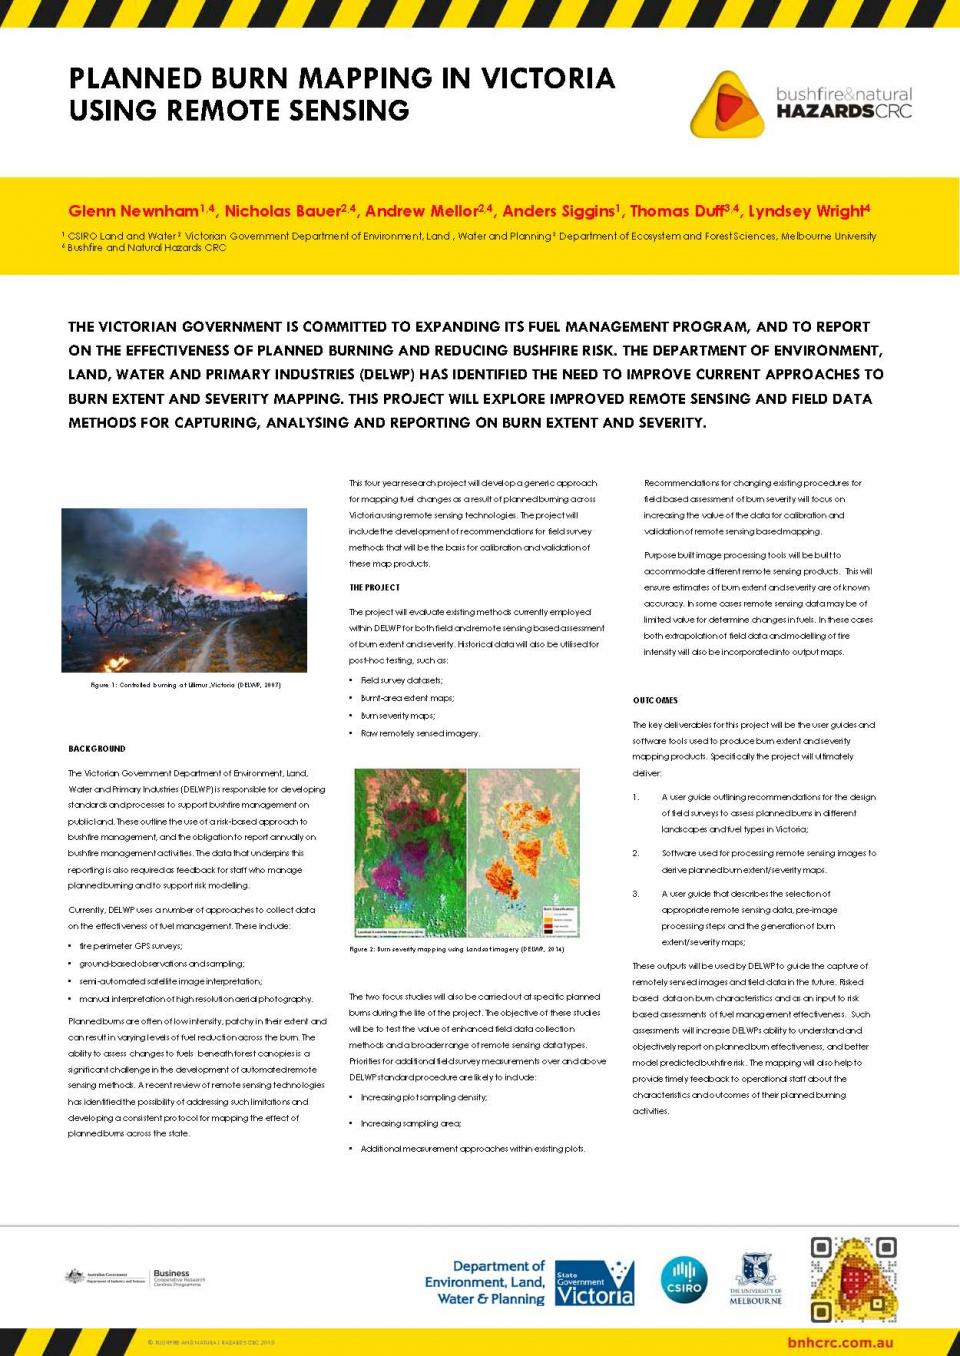 Planned burn mapping in Victoria using remote sensing